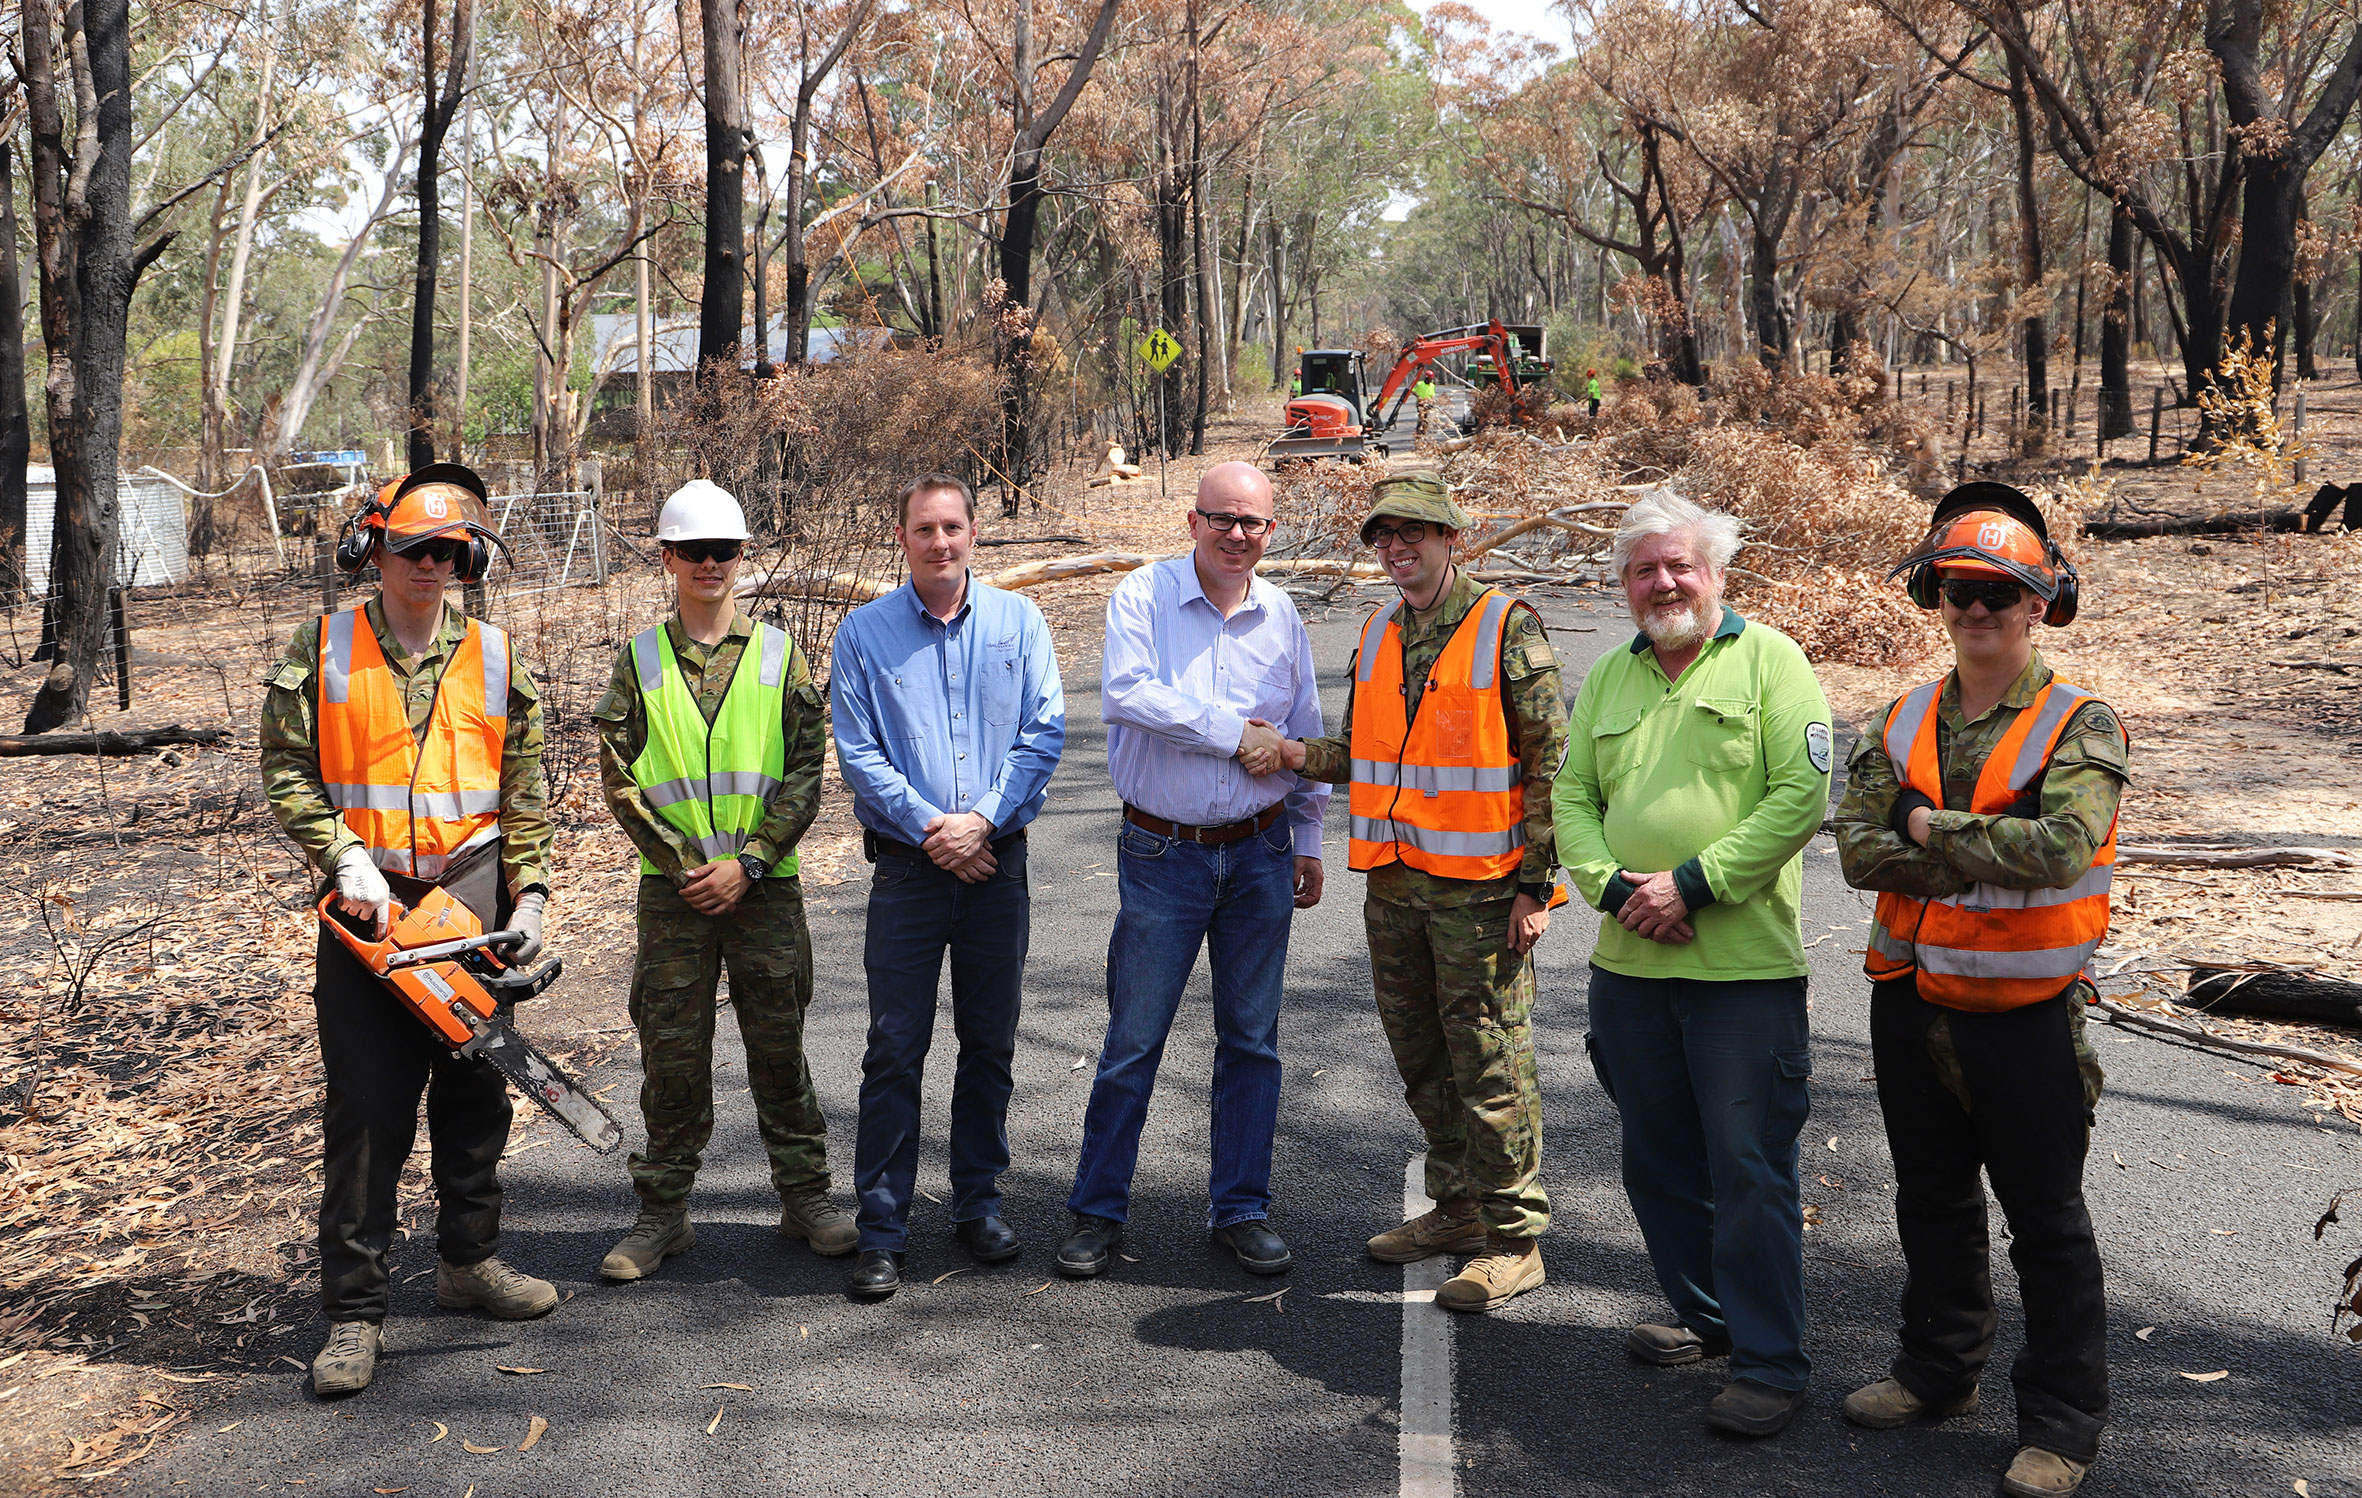 Sapper Matthew Serretta, Private Nick Kelchine, Council's emergency management program leader Peter Belshaw, Mayor Mark Greenhill, Lieutenant Edward Pym, Council's natural area management program leader Eric Mahony and Sapper Aaron La Rosa at Mount York.